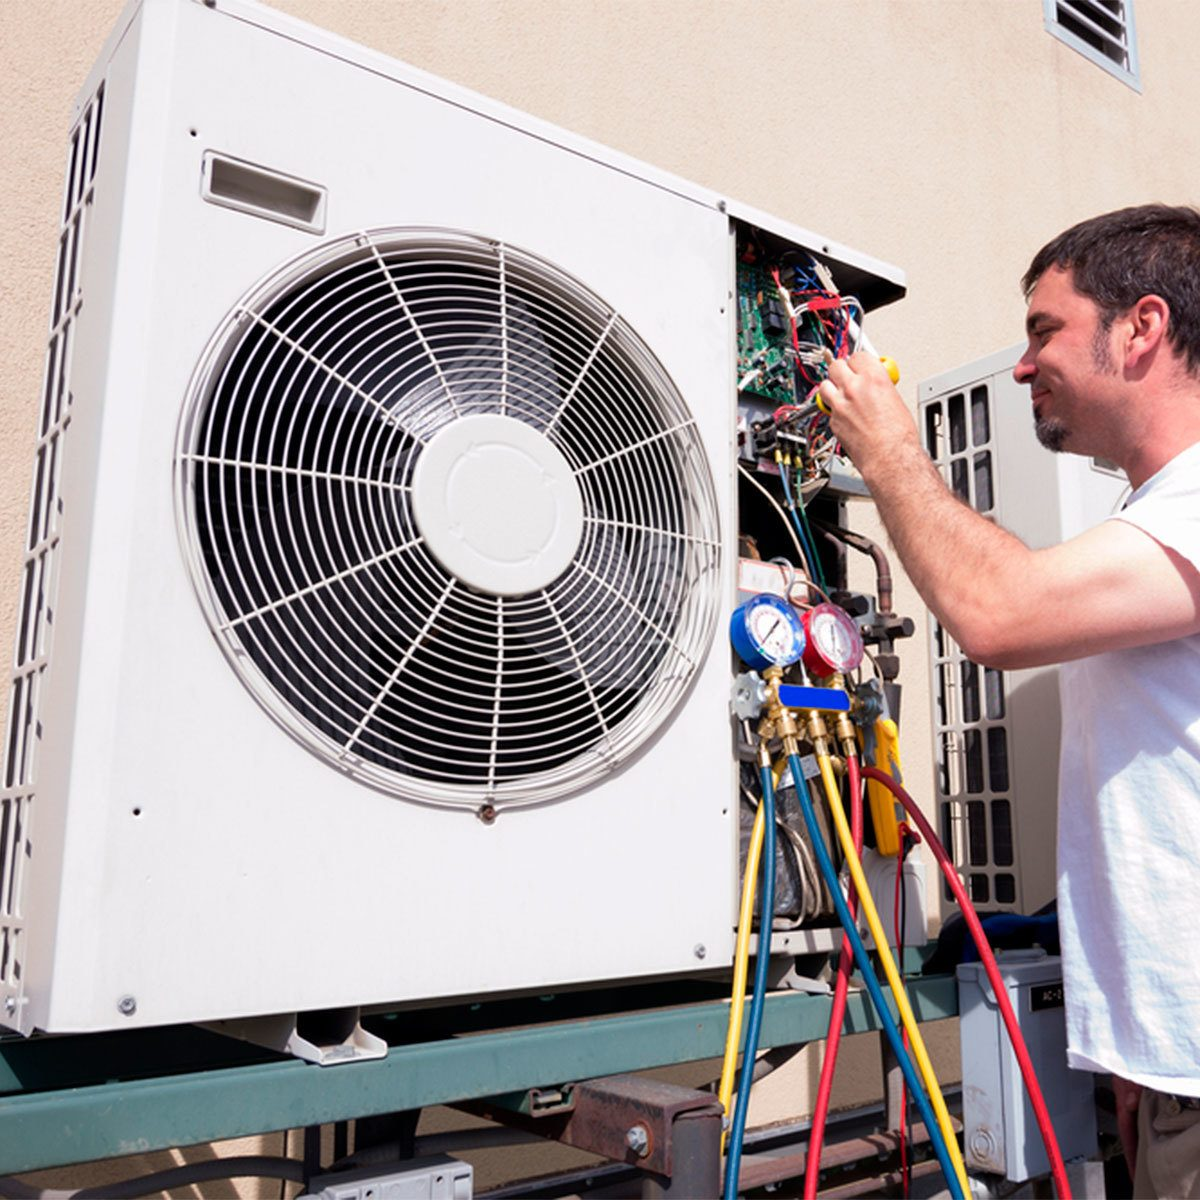 Install a Ductless Mini Split HVAC System